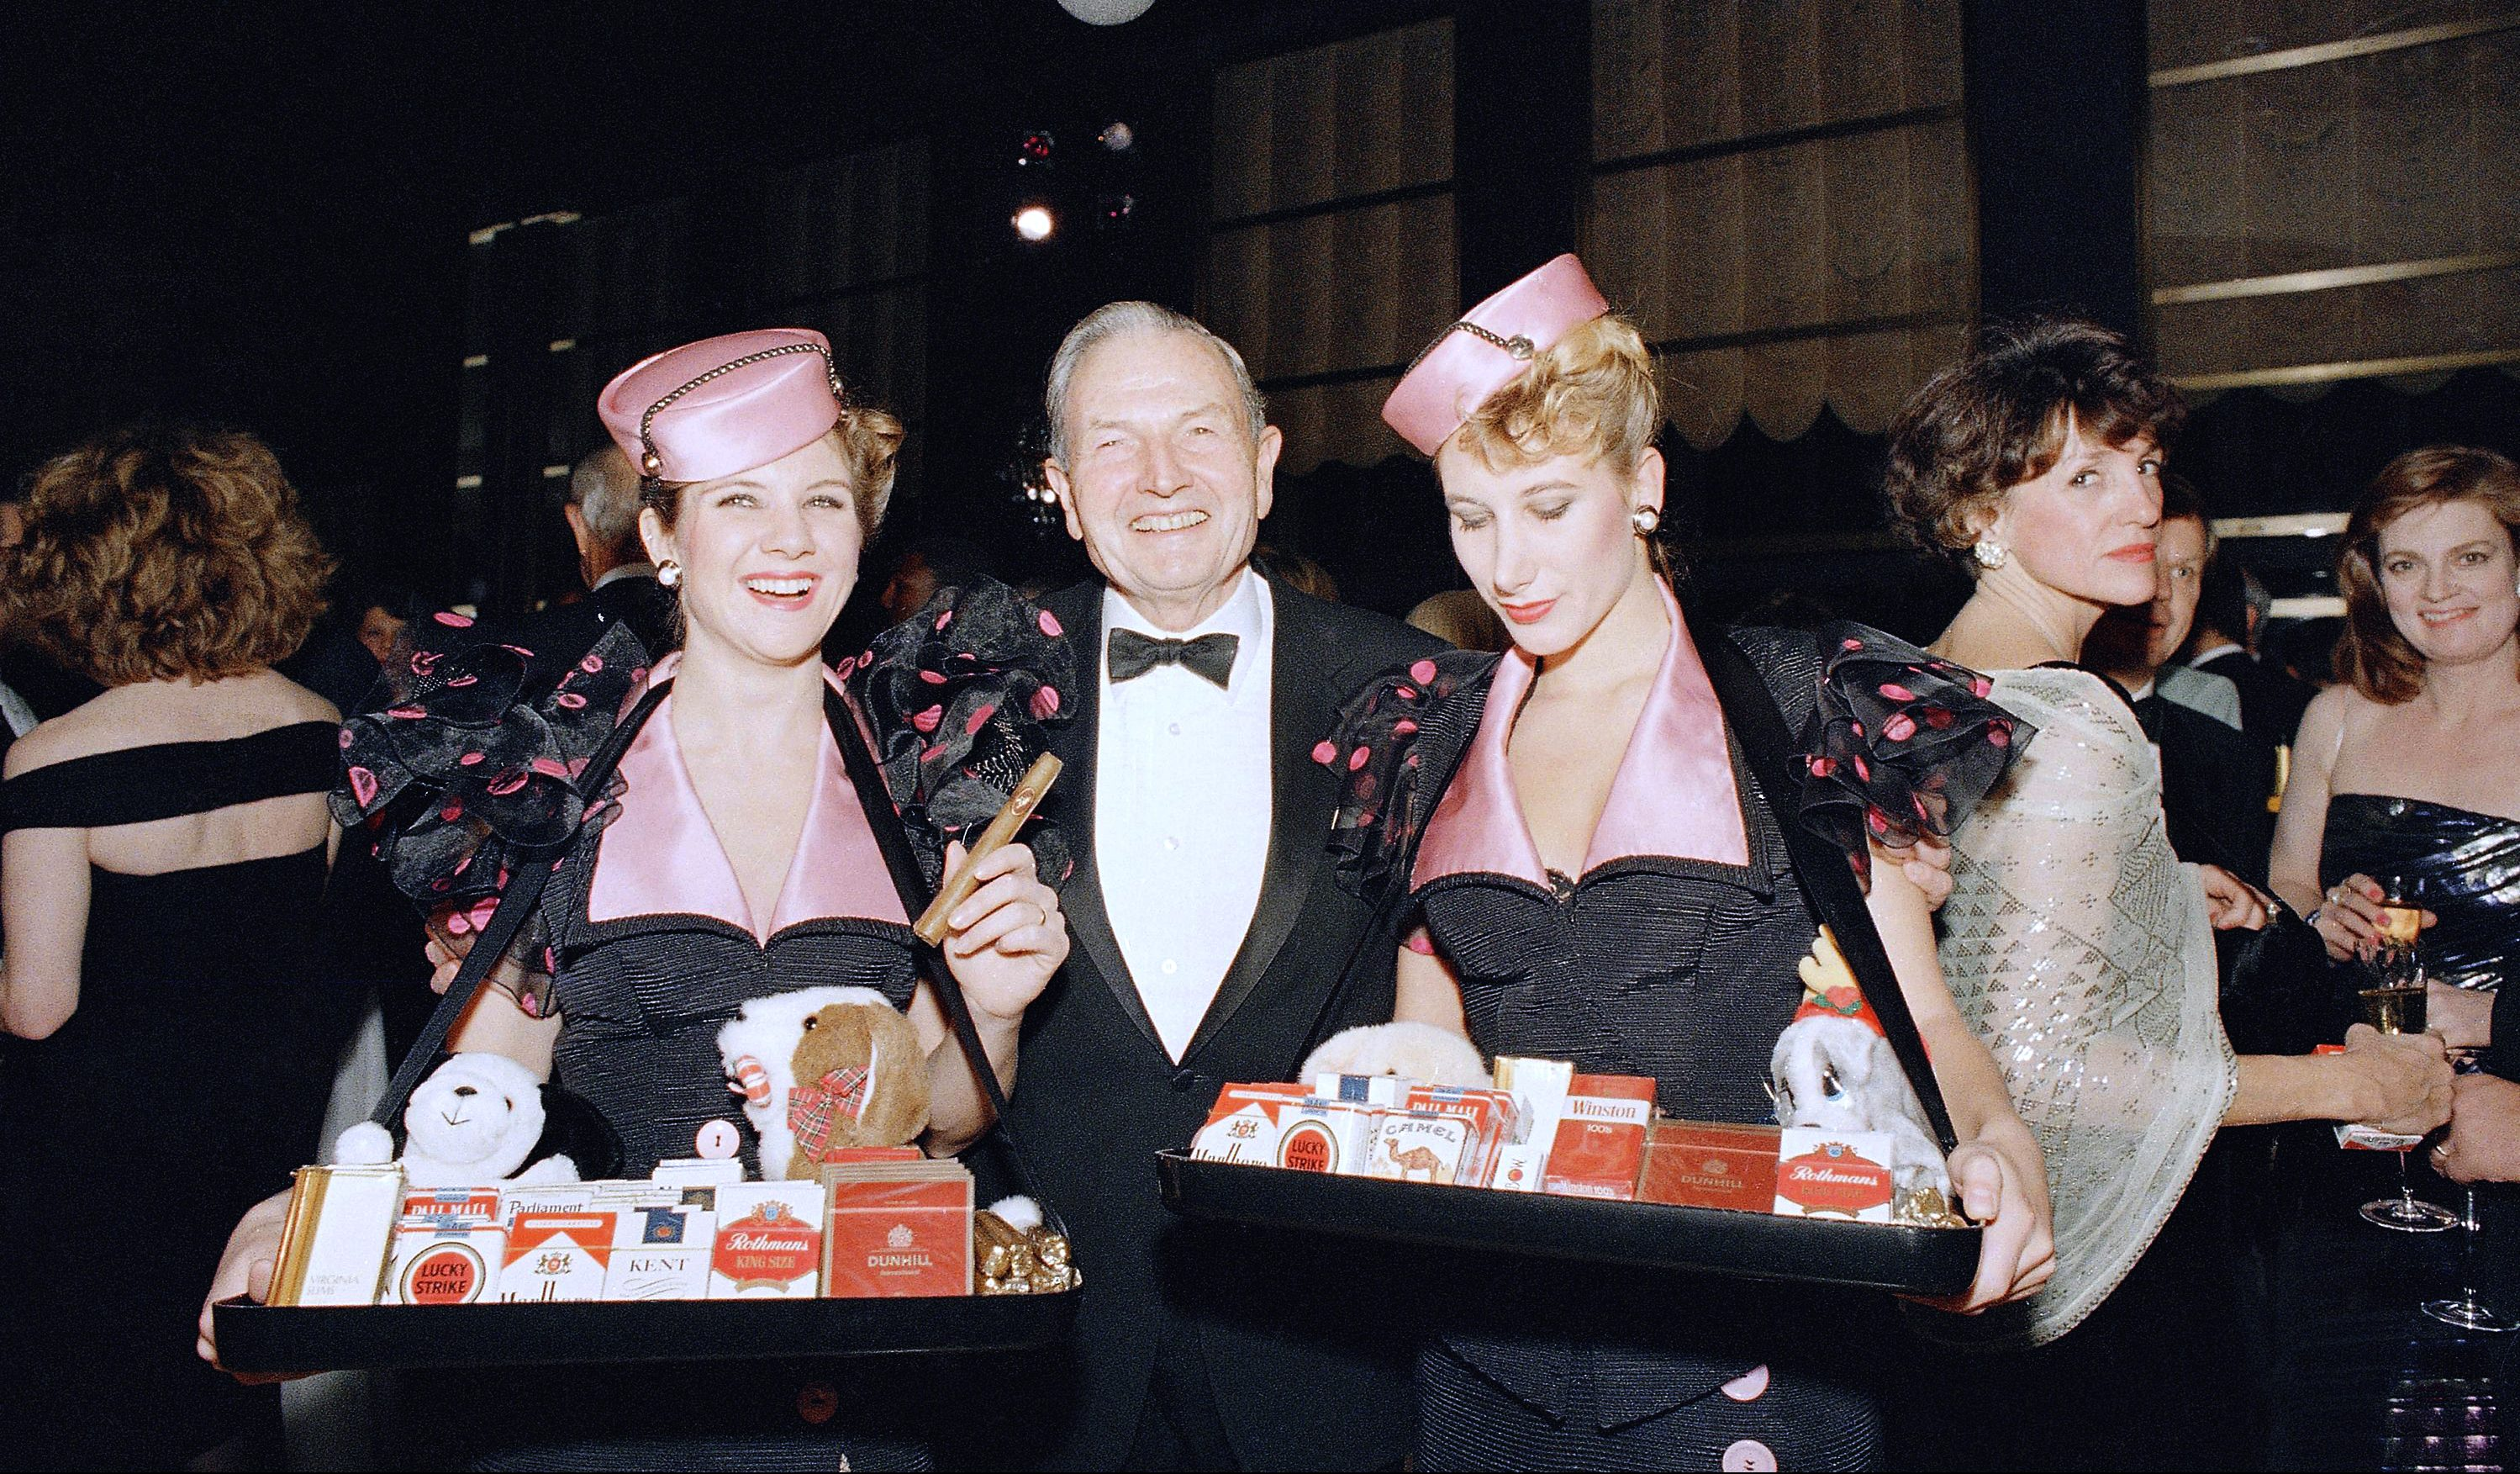 David Rockefeller is joined by cigarette girls at the gala  bash to celebrate the re-opening of the Rainbow Room in Rockefeller Center, New York on Wednesday, Dec. 10, 1987.   The night club renovation, costing $20 million and lasting two years, was done to the style of the 1930s  when the club was in its heyday.